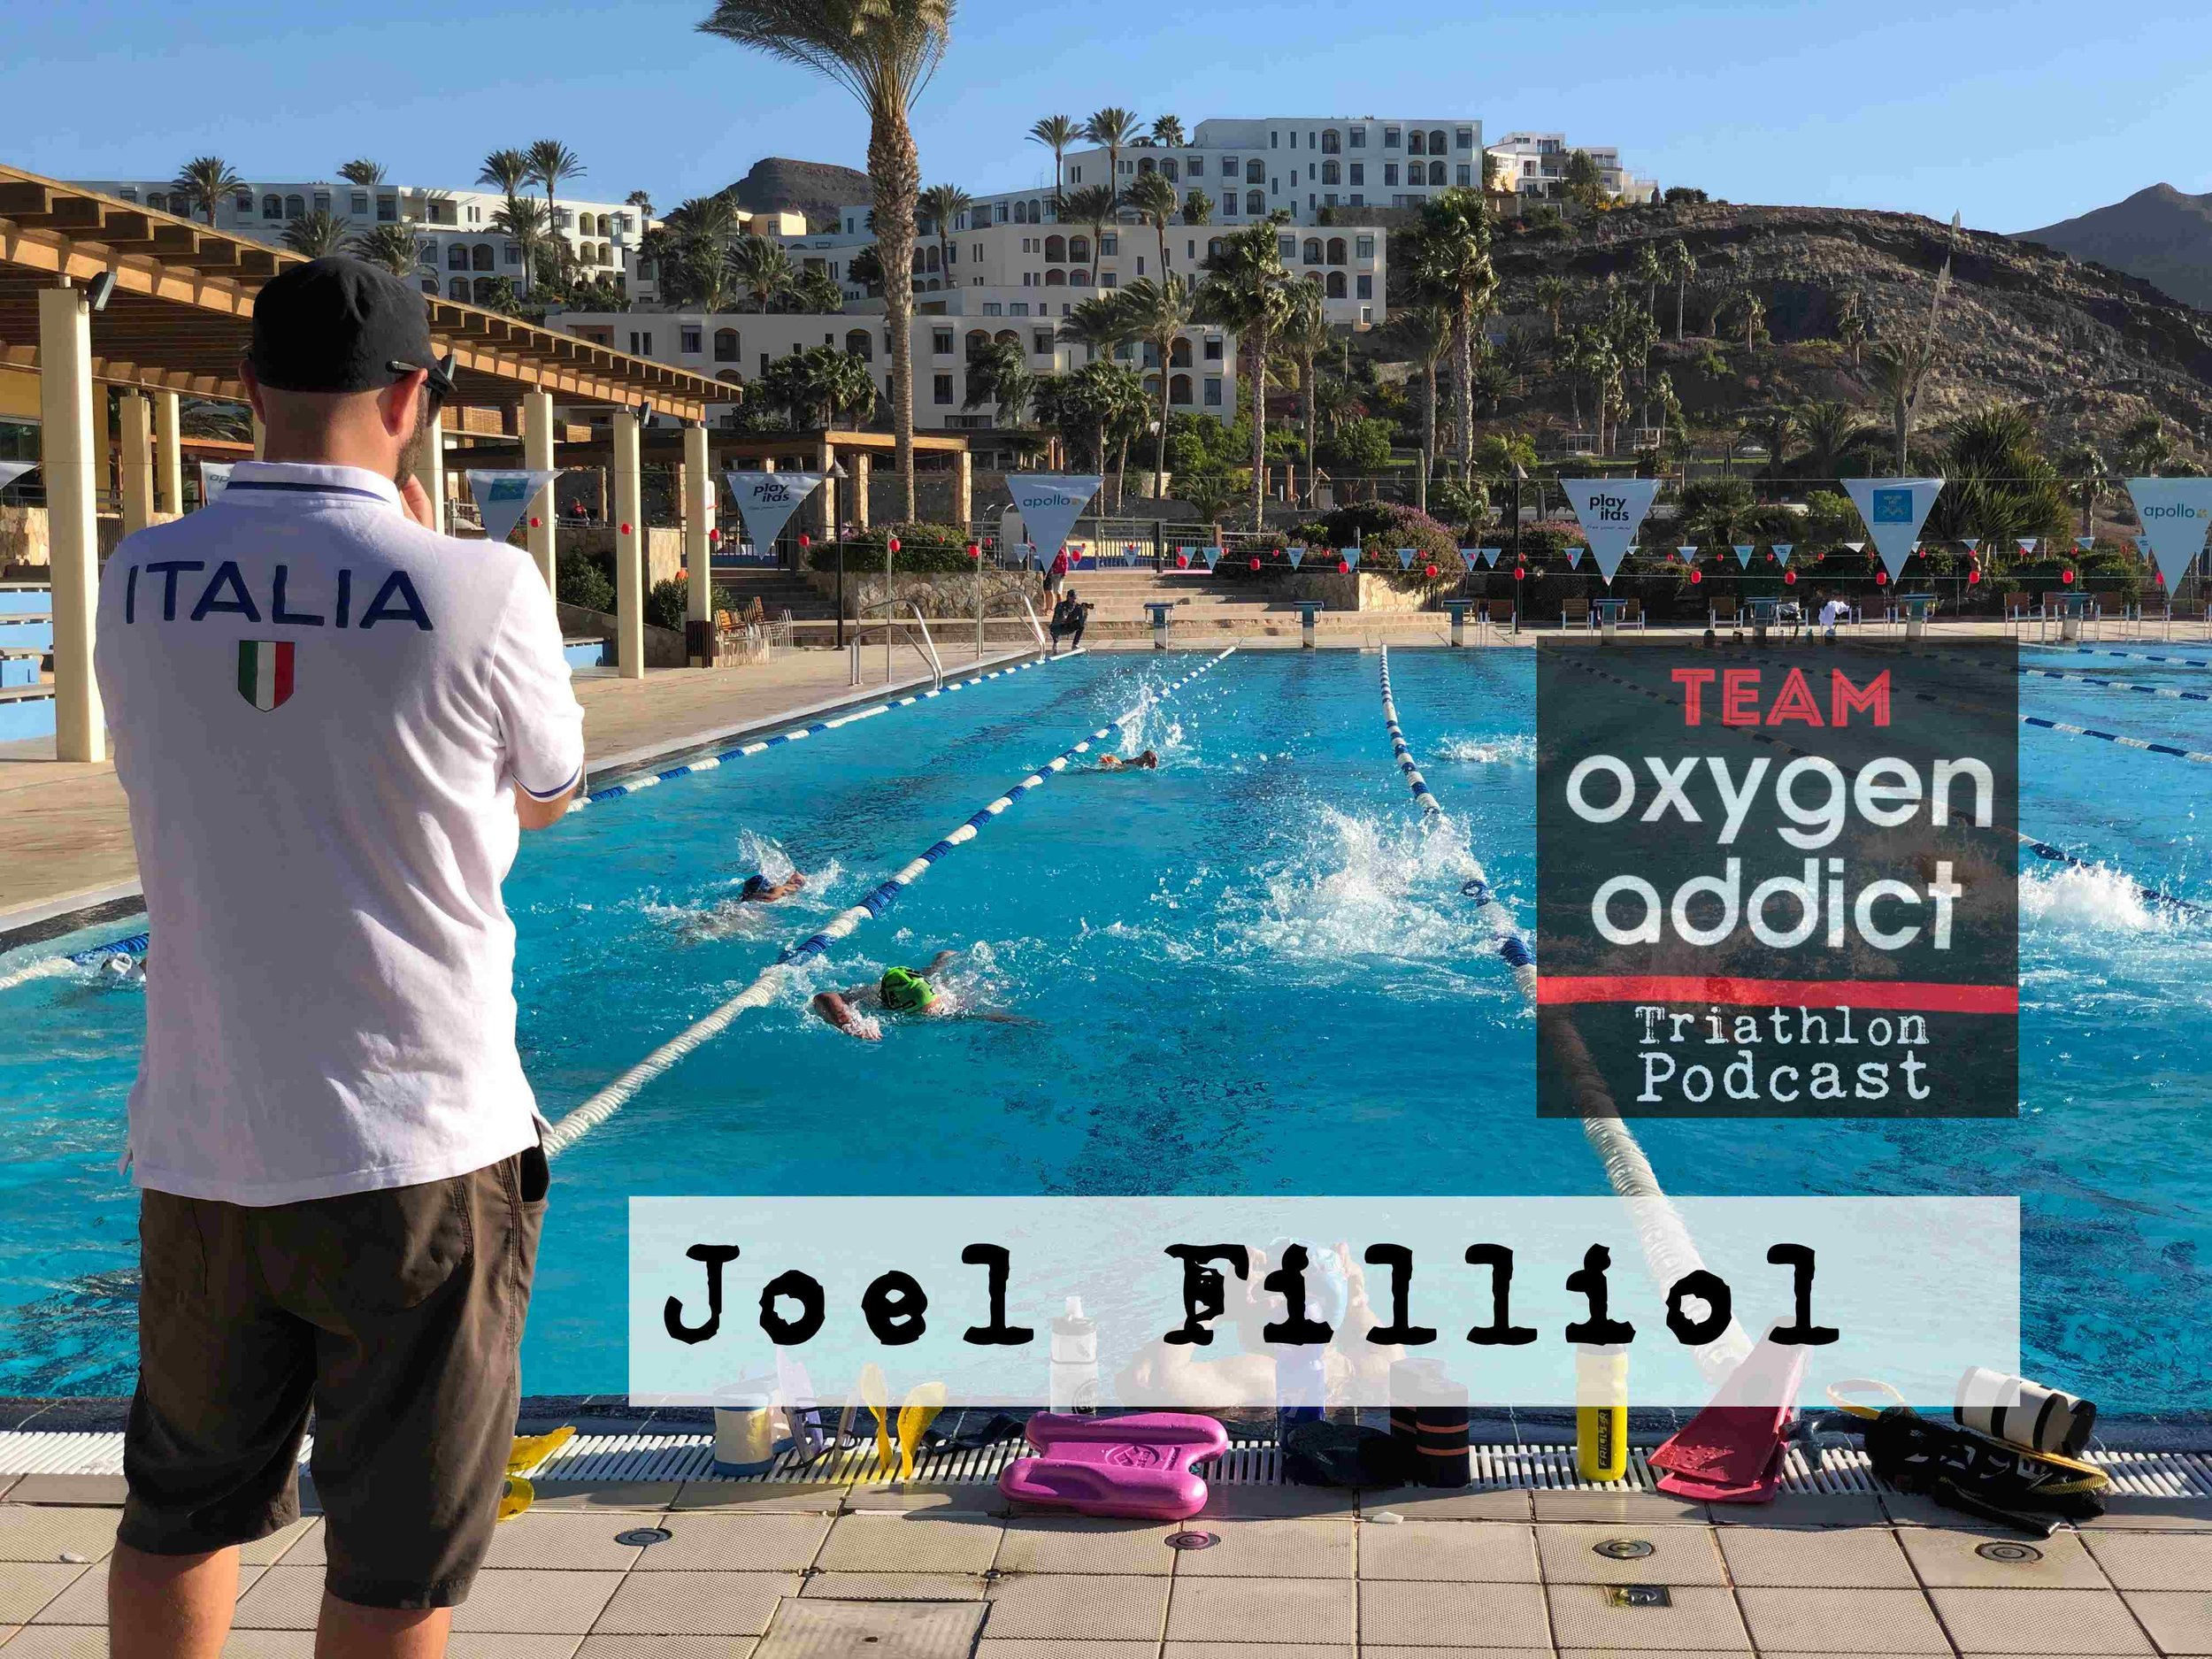 oxygen-addict-podcast-filliol.jpg